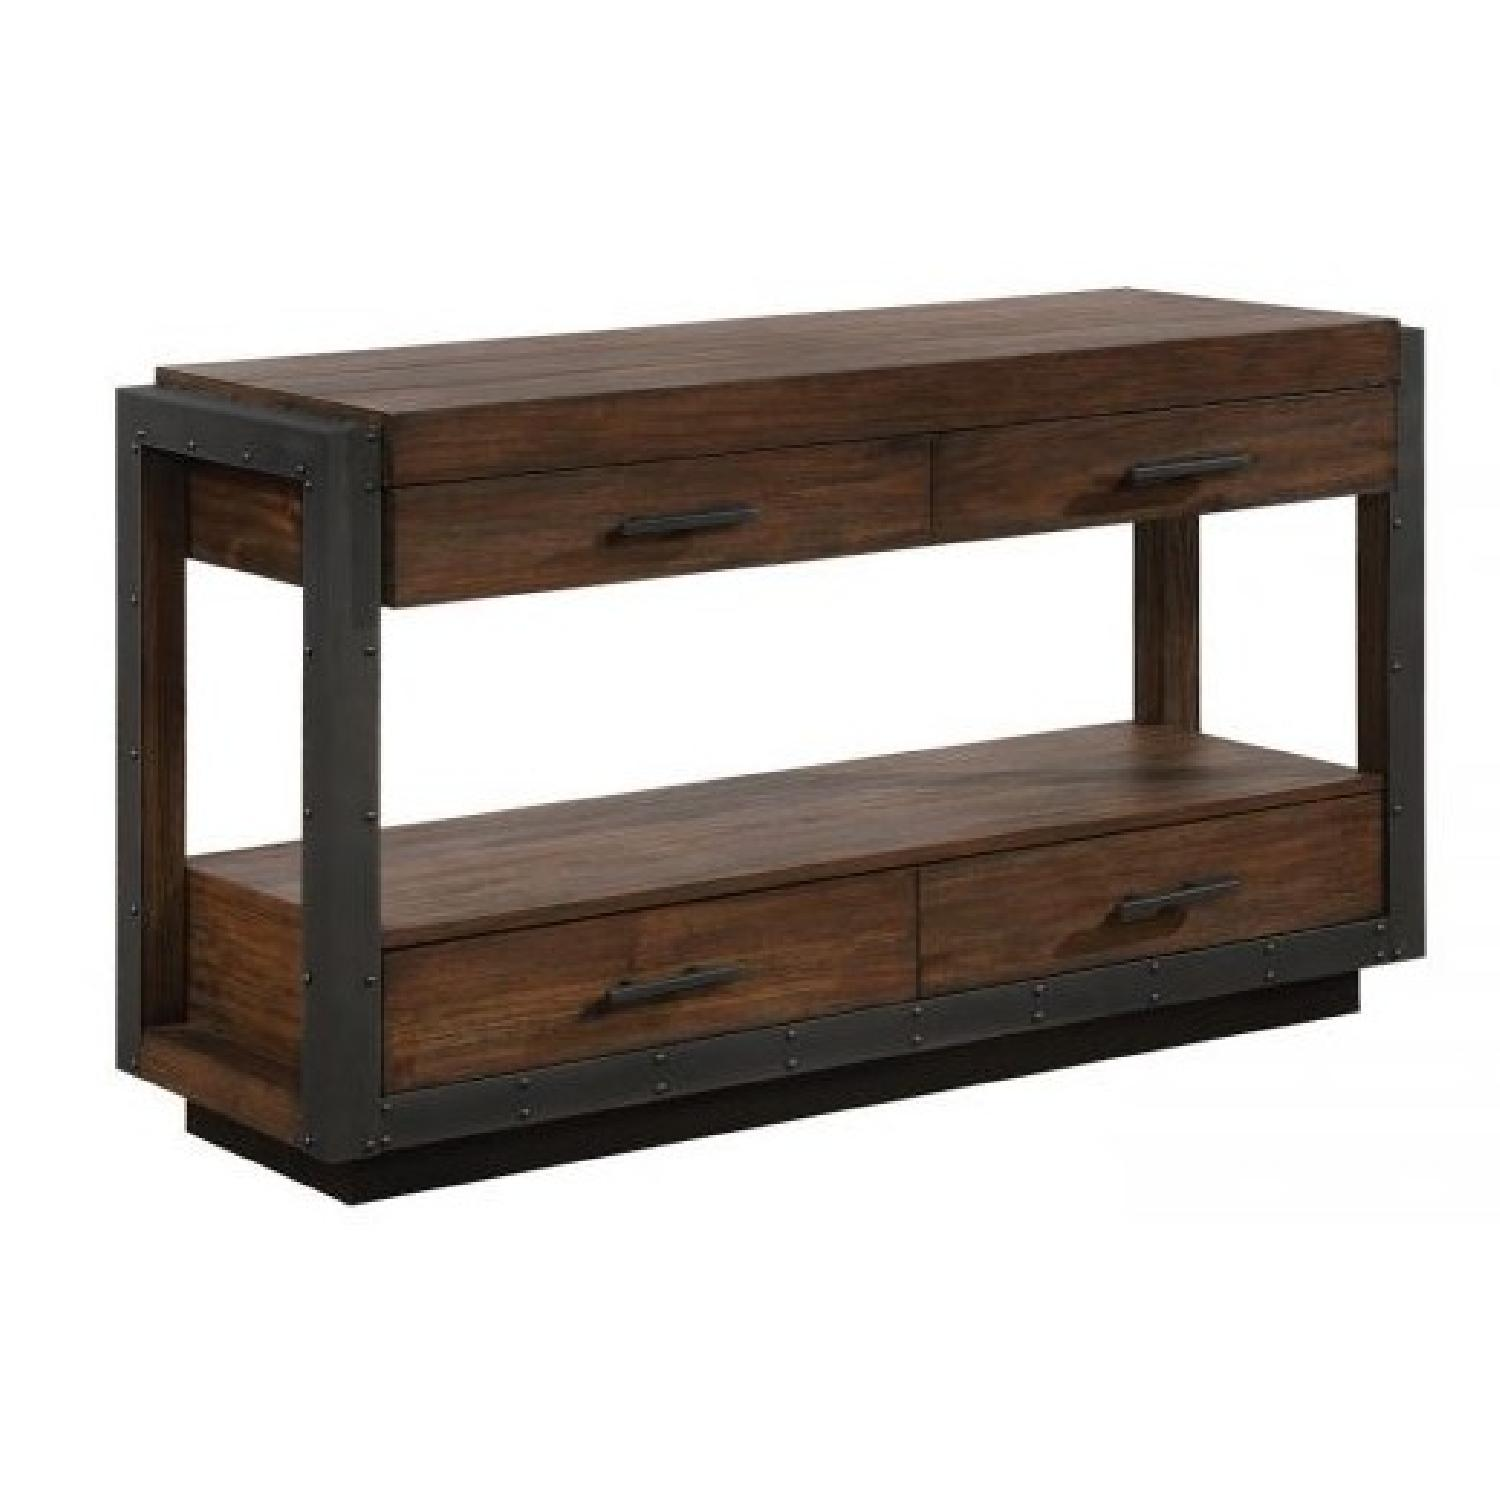 Industrial Style Sofa Table in Bourbon w/ Black Metal Accent